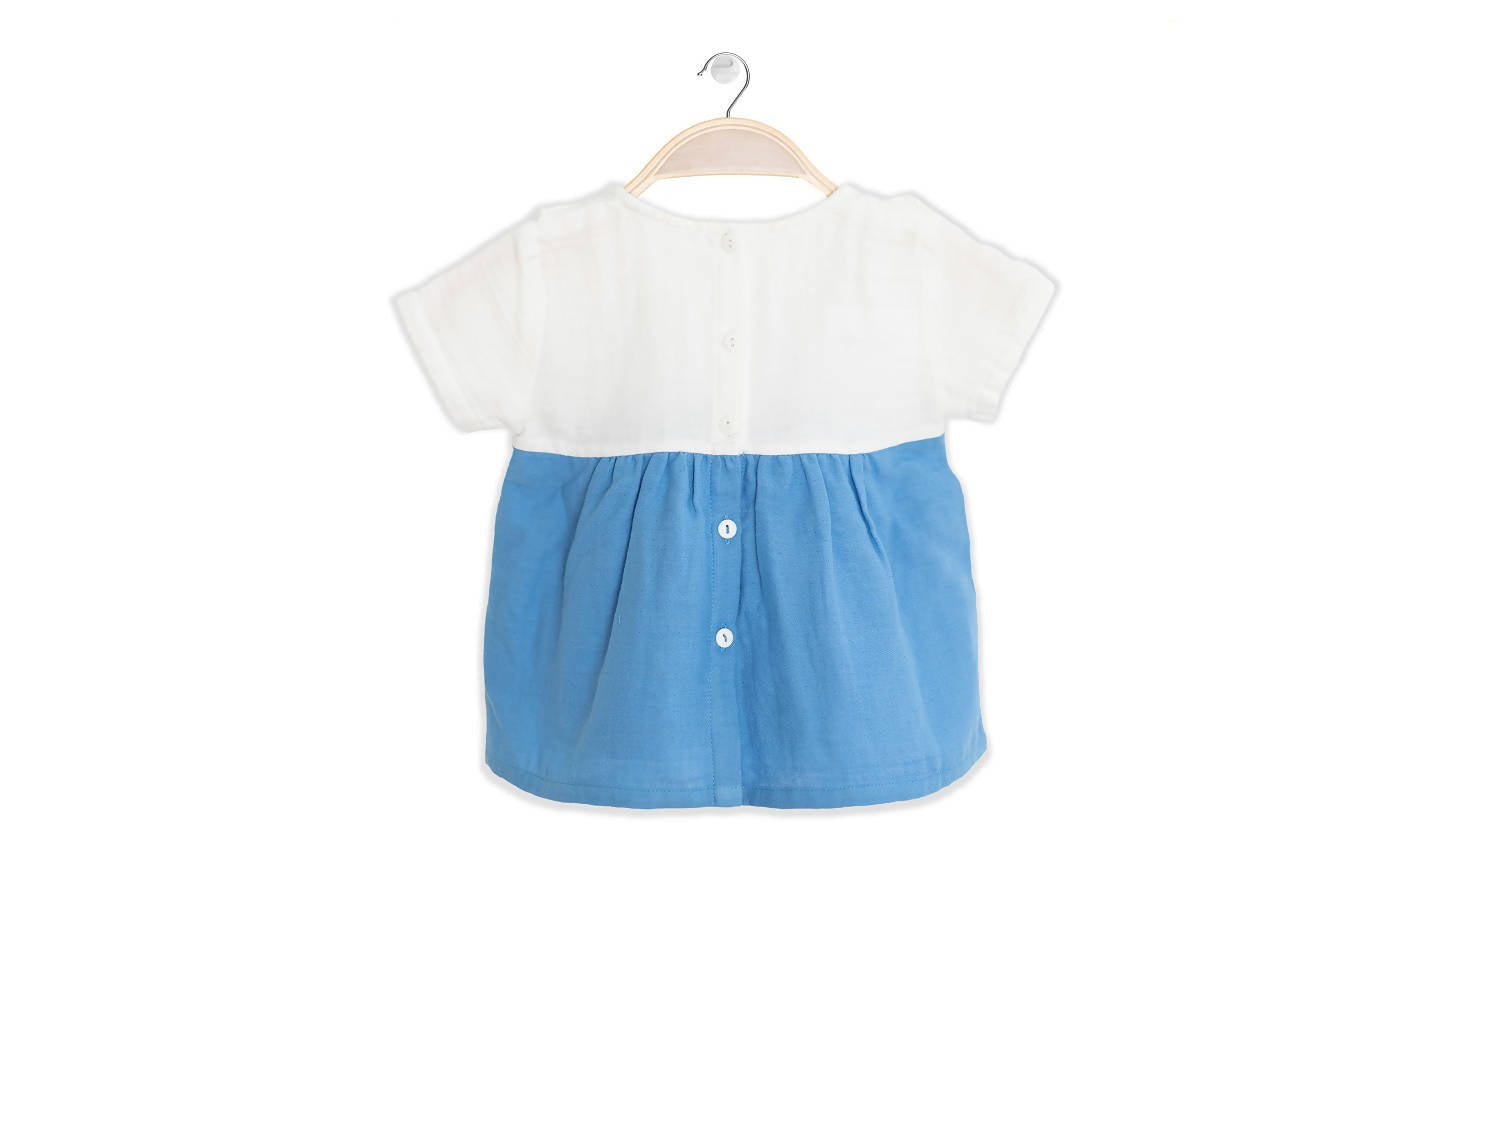 Peter Jo Kids Organic Shirt Grace for baby girls blue made of organic muslin cotton 1